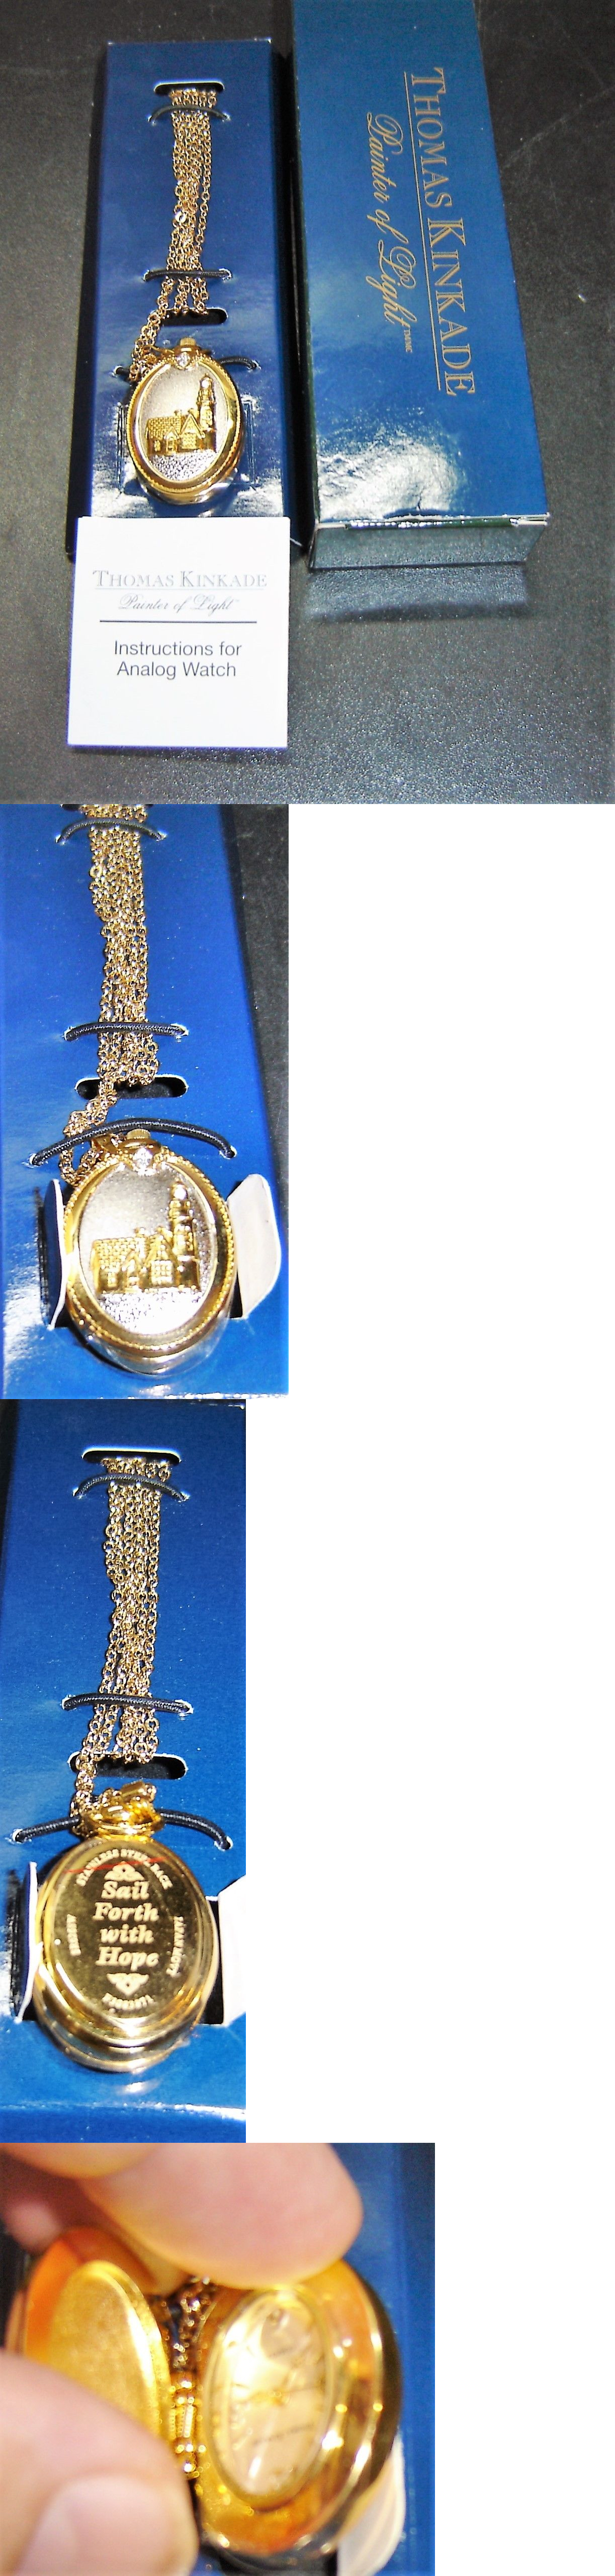 Necklace Watches 10329: New Thomas Kinkade Lighthouse Pendant Stainless Steel Quartz Analog Watch In Box -> BUY IT NOW ONLY: $45 on eBay!